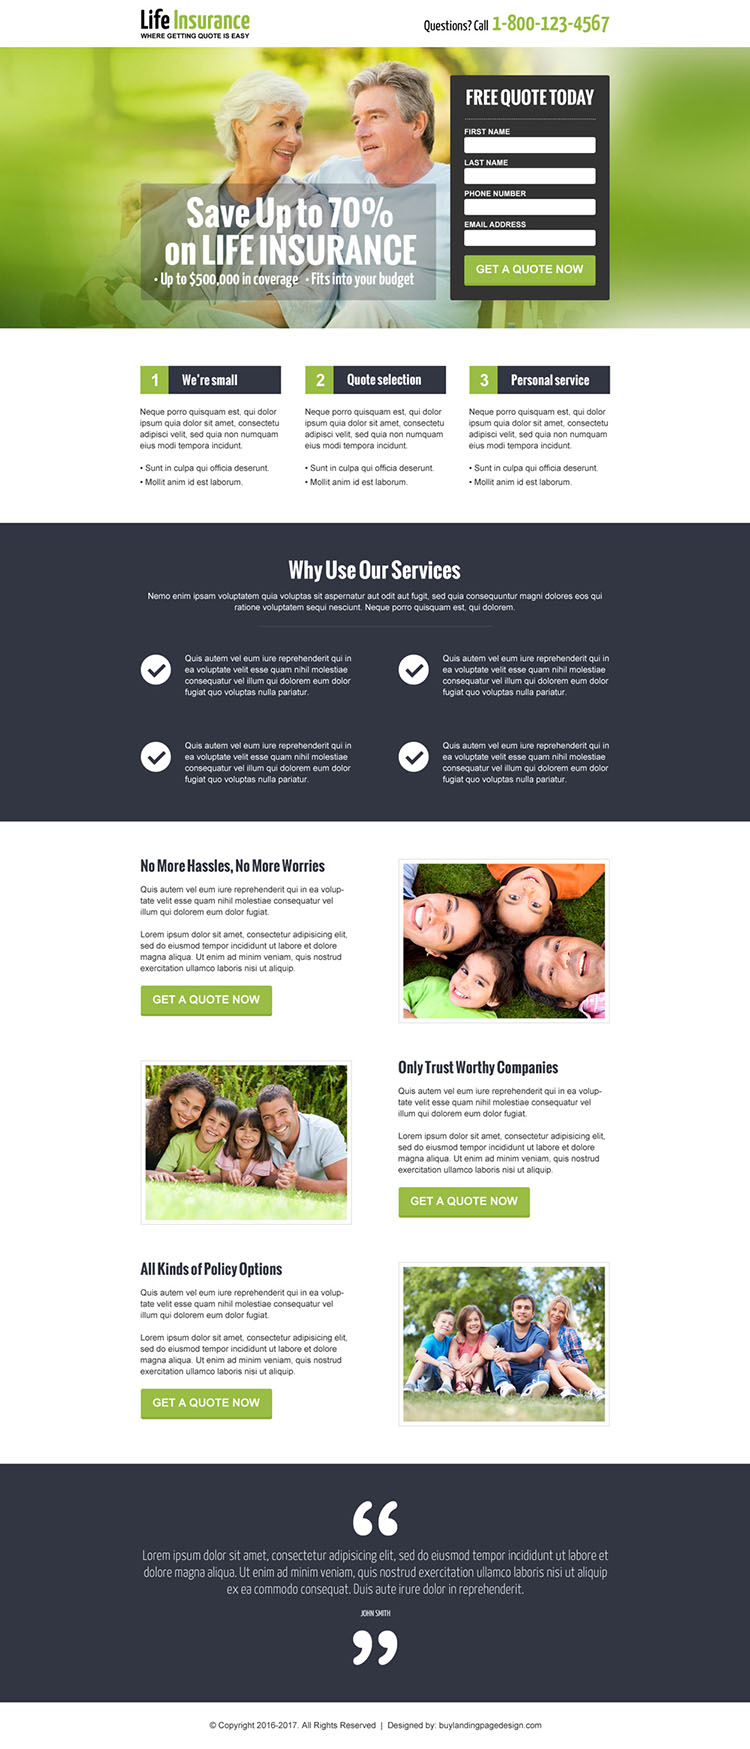 save money on life insurance responsive landing page design